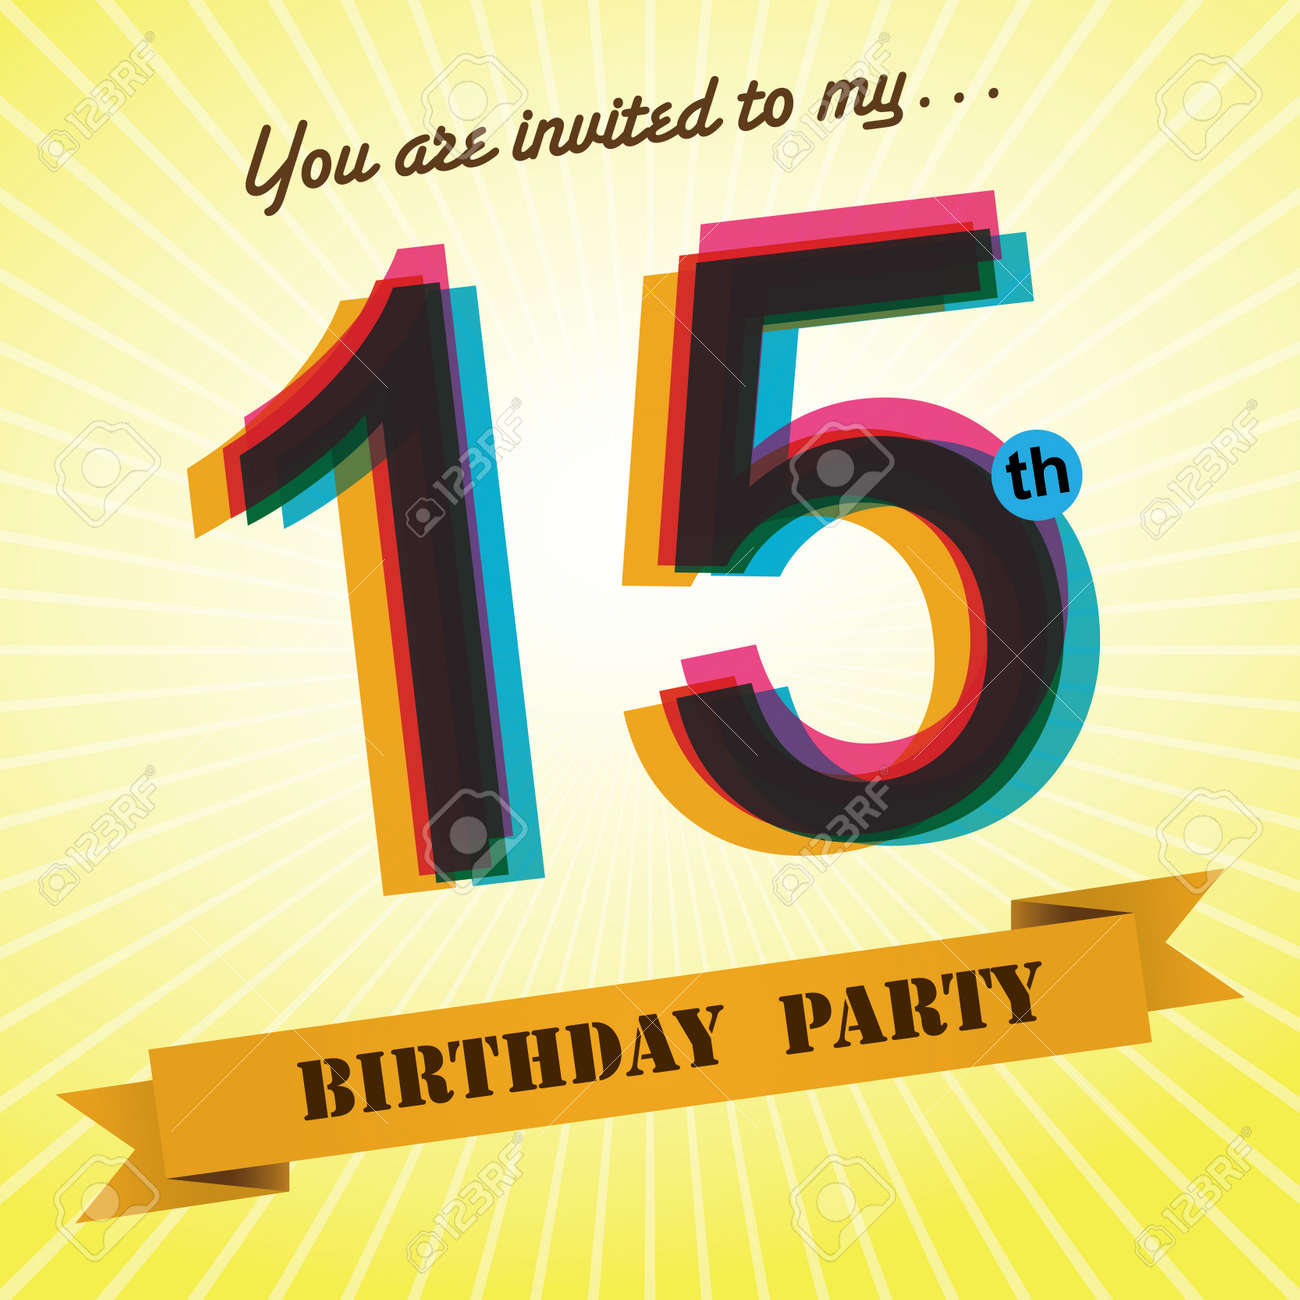 15th birthday party invite template design retro style vector